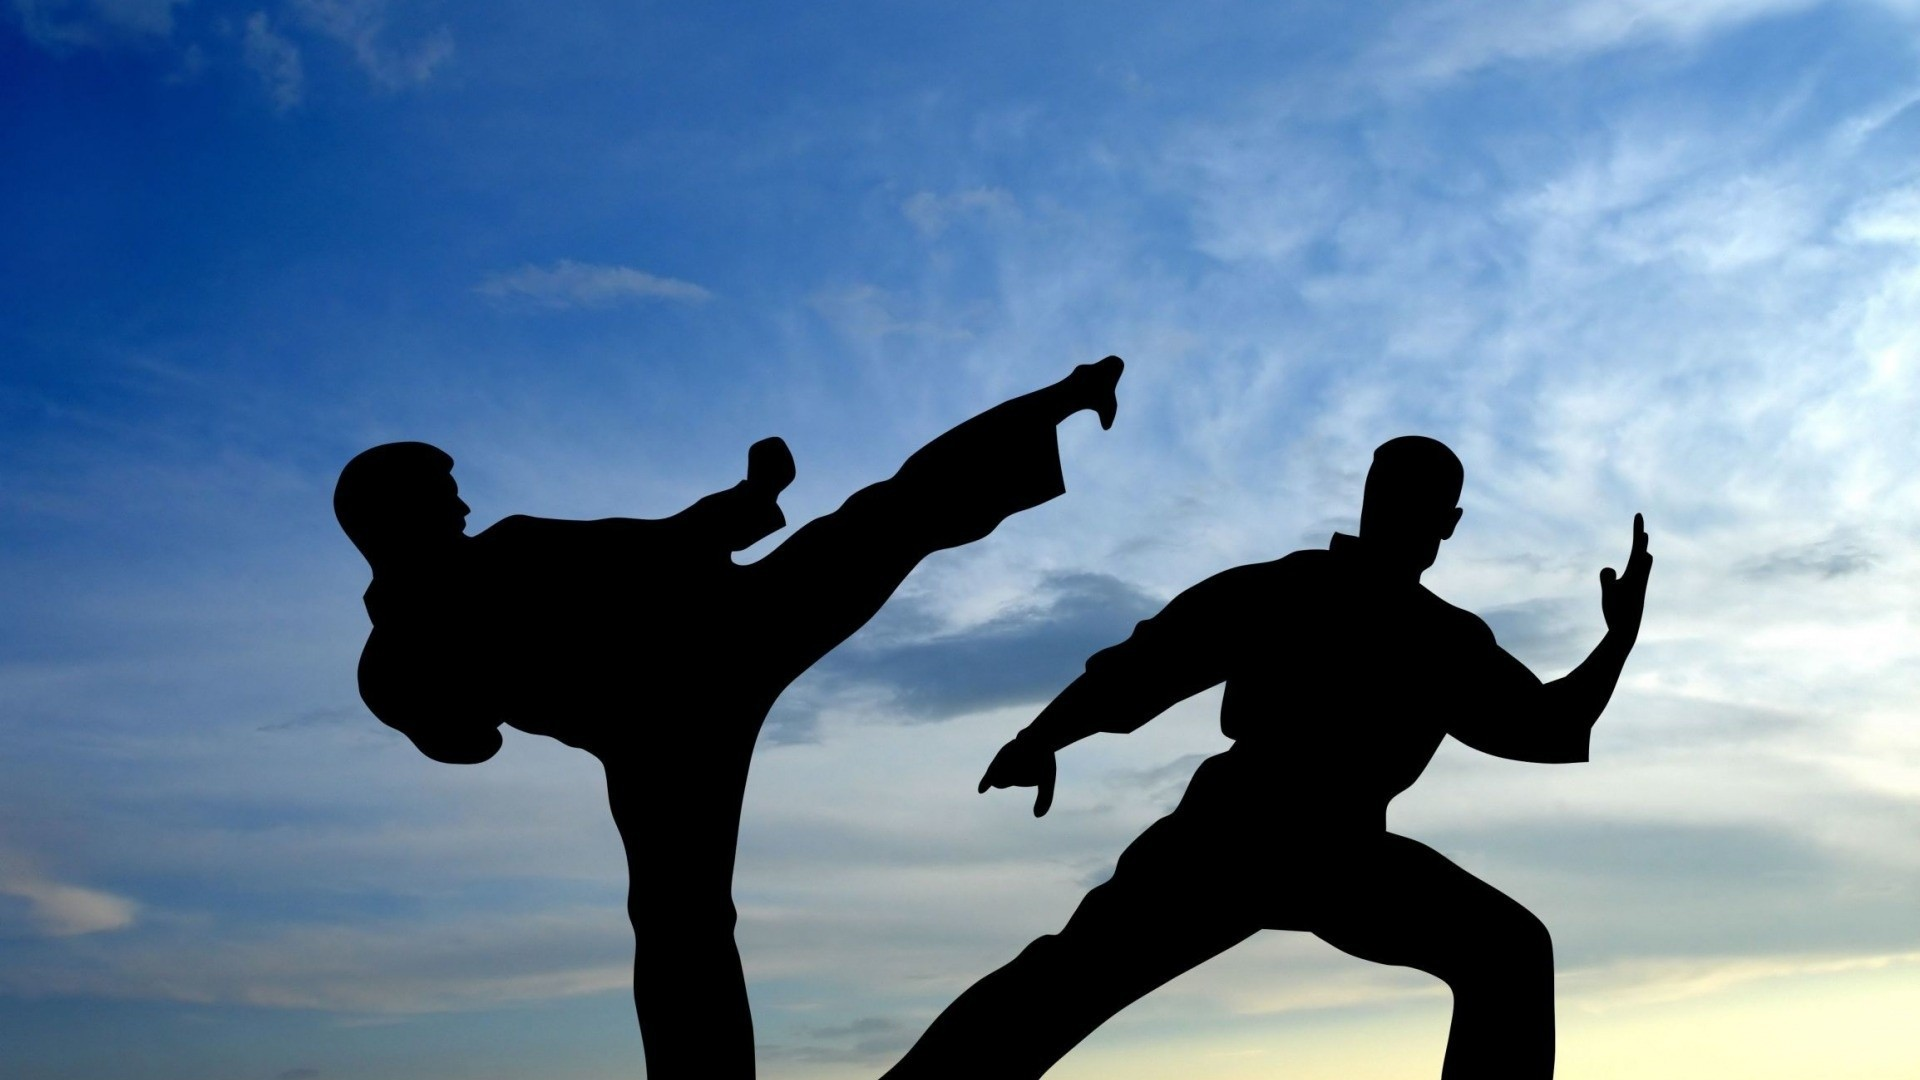 Res: 1920x1080, Karate Fight Shadow Free Hd Wallpapers | Free HD Wallpapers HQ